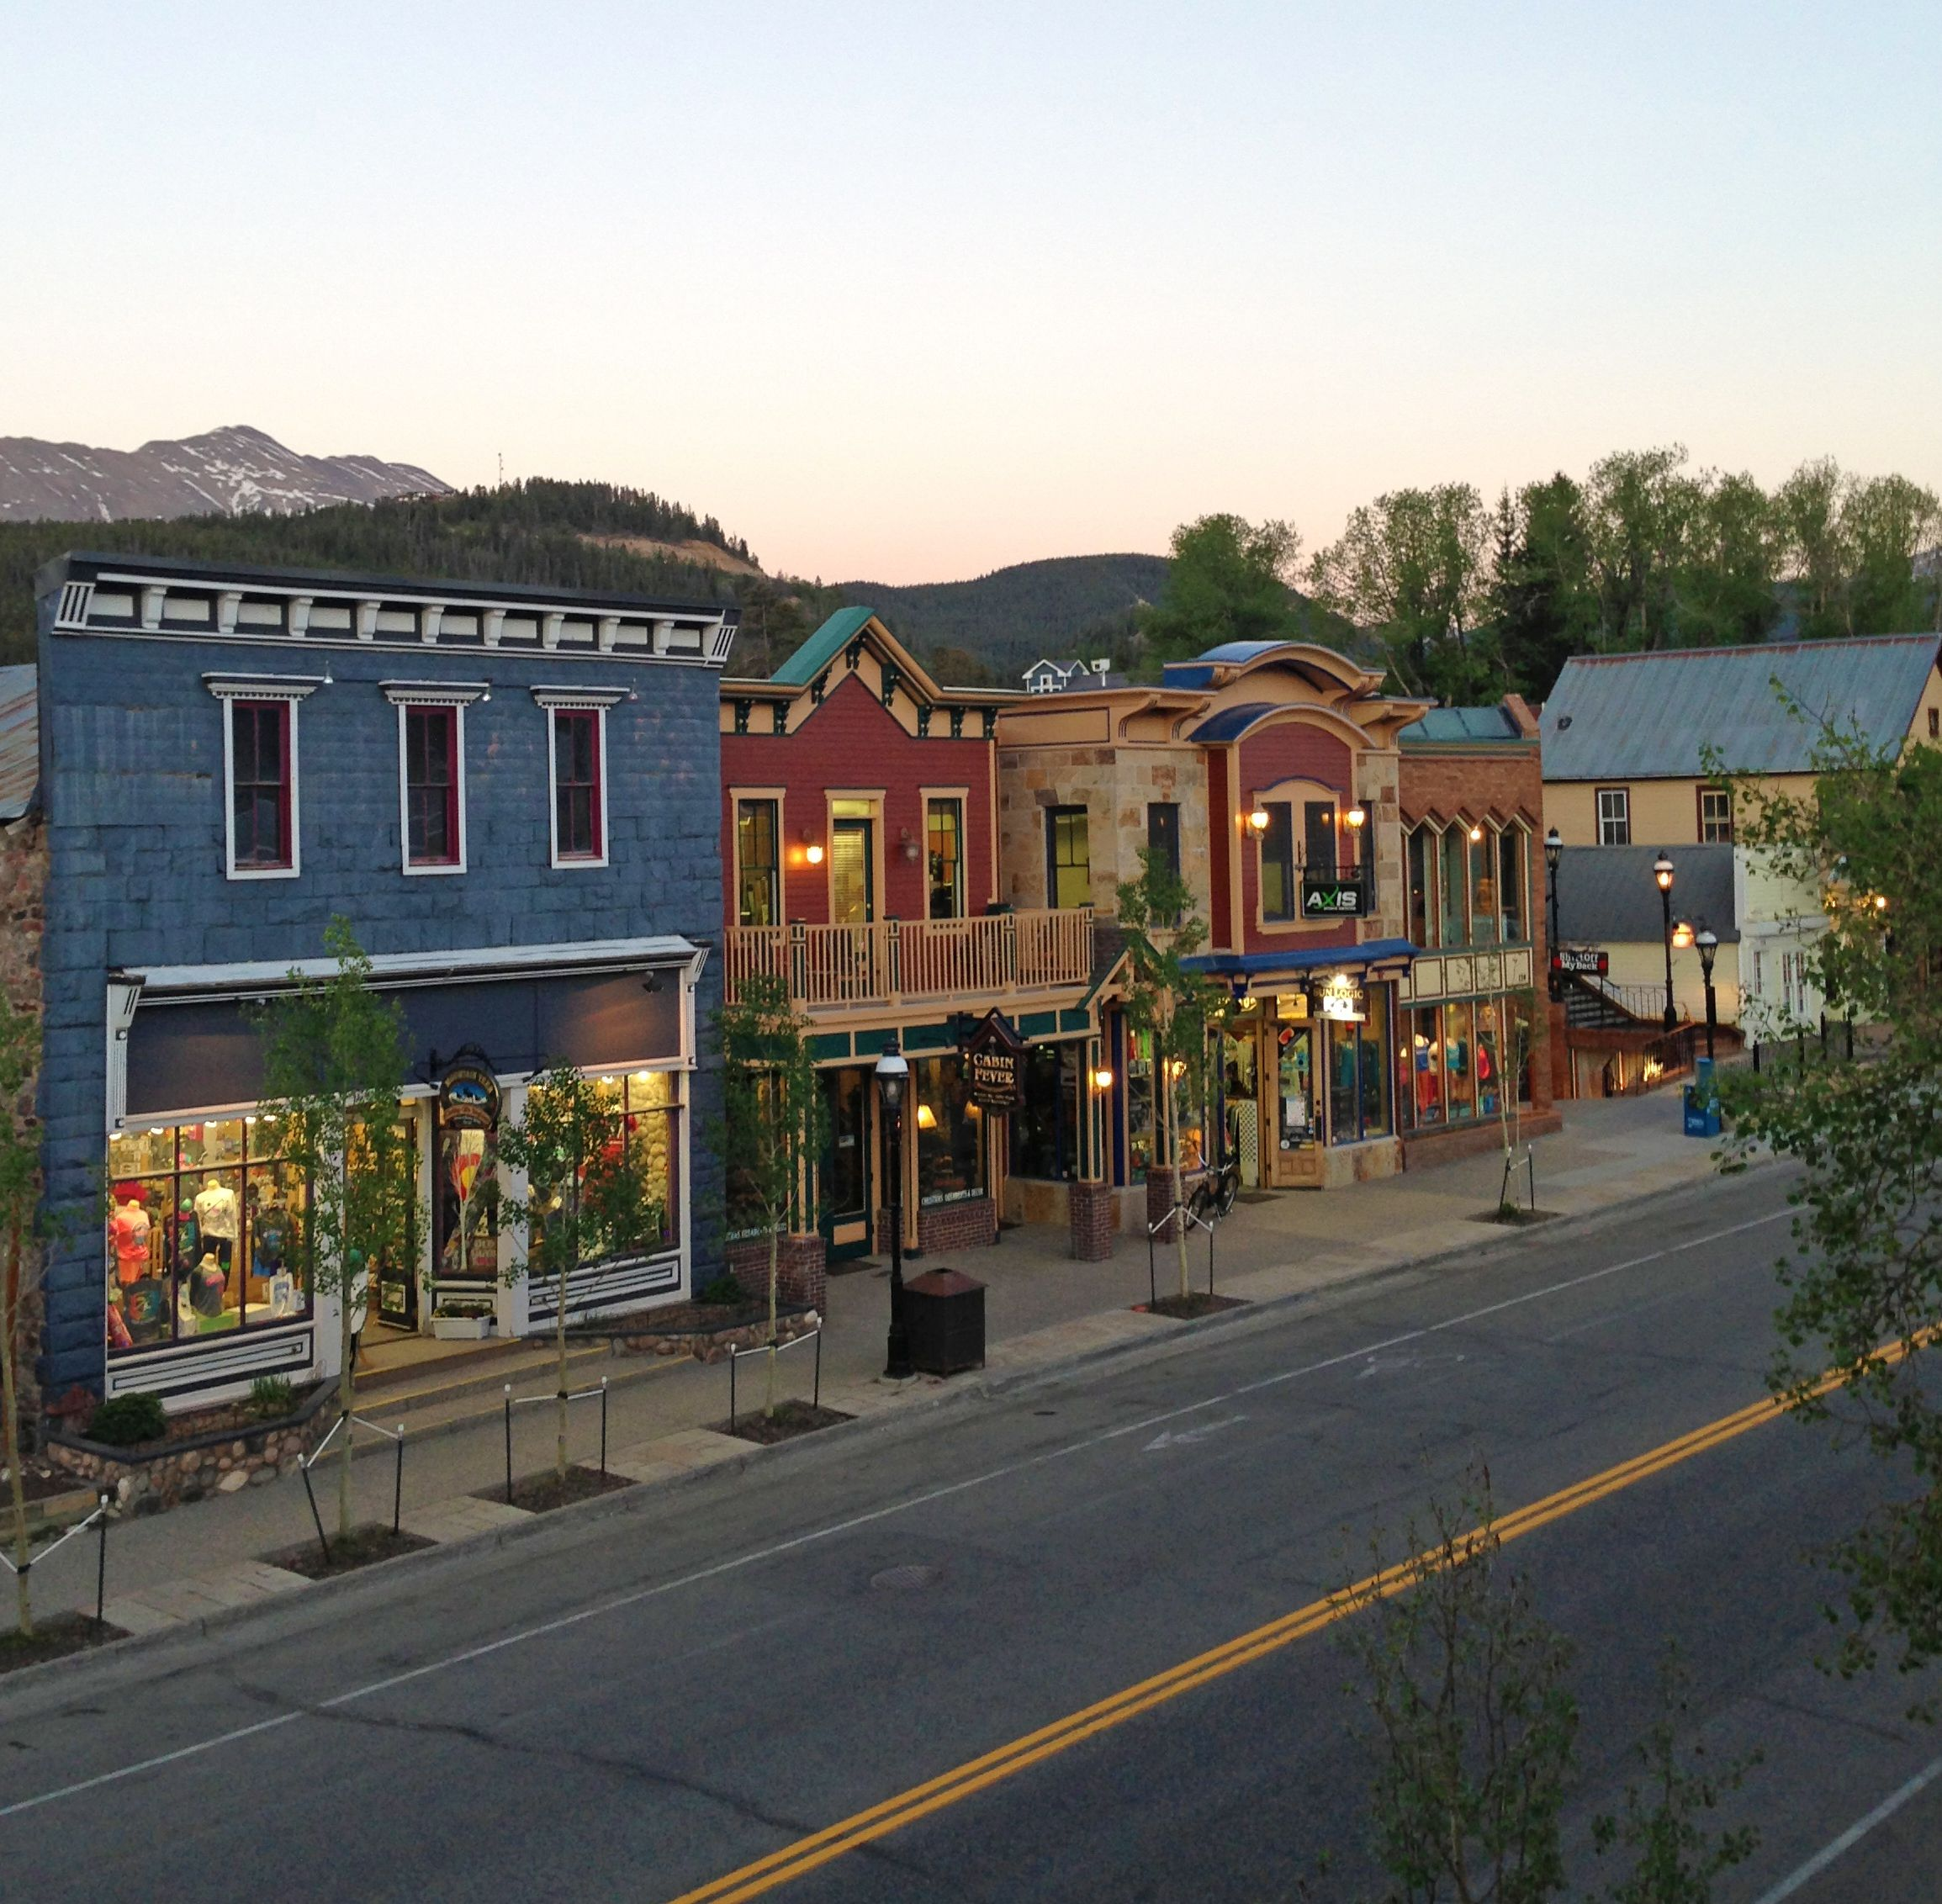 Storefronts on the east side of Main Street with Baldy Mountain visible behind.